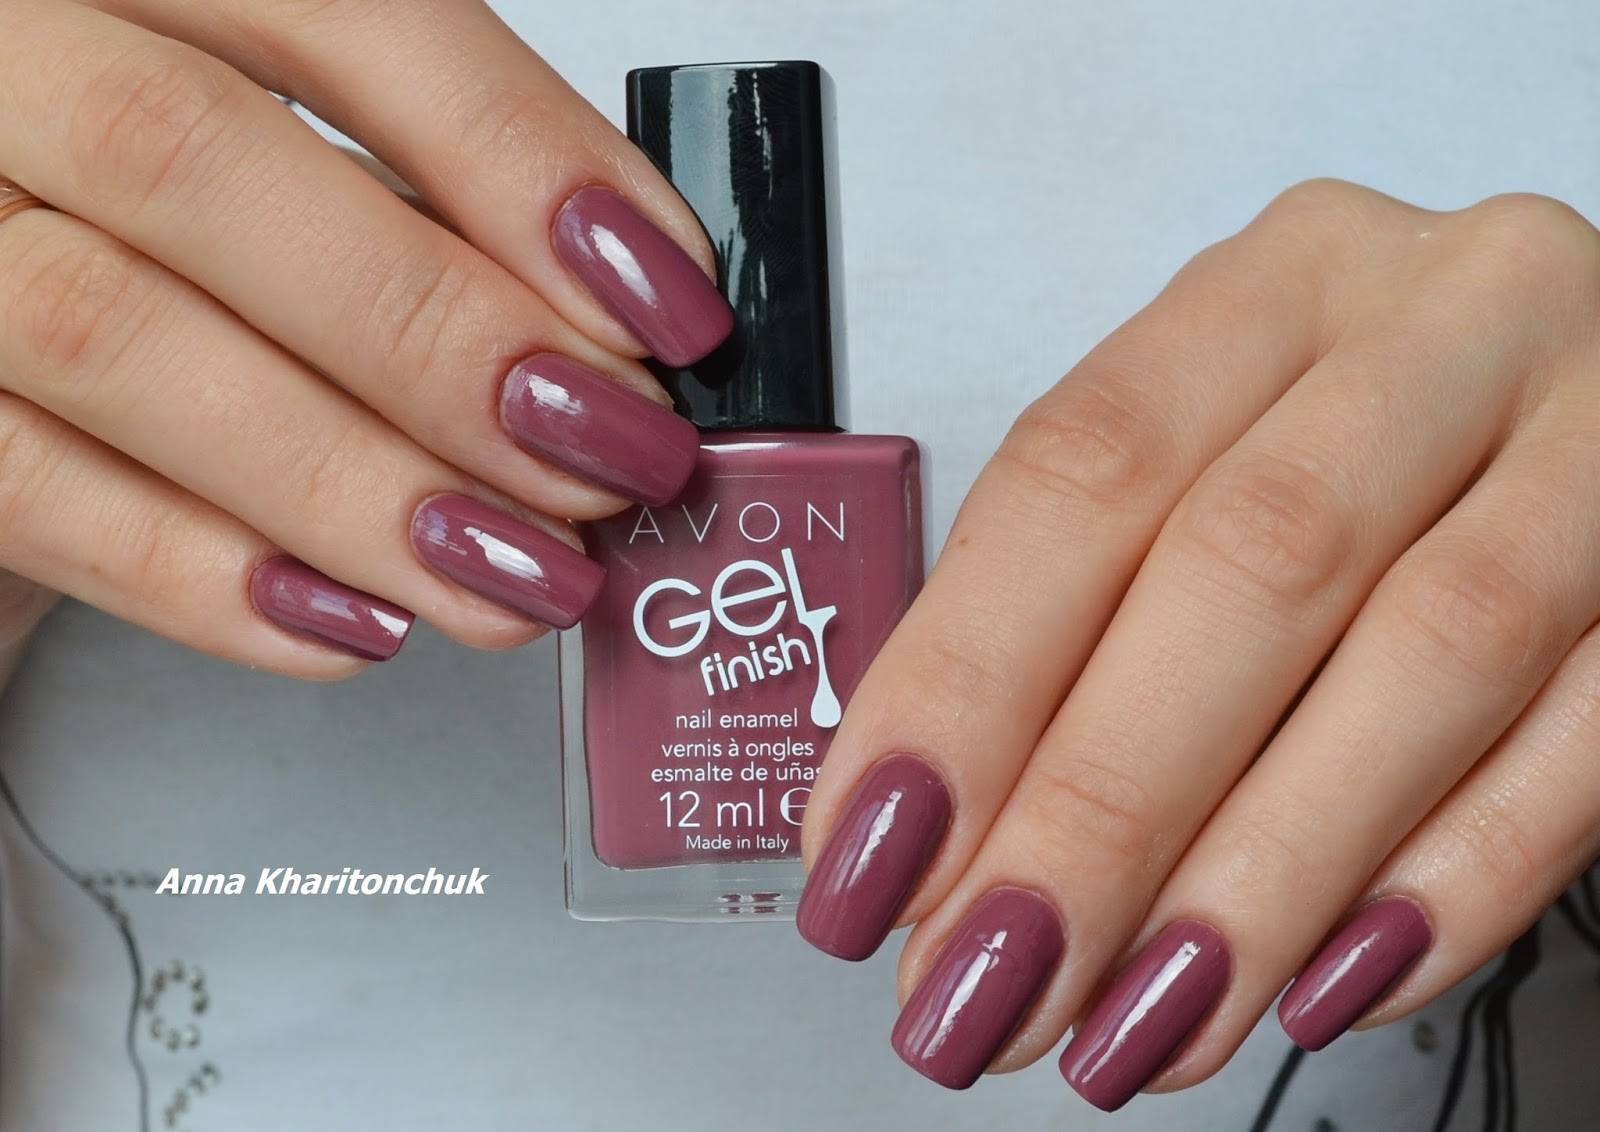 Avon Gel Finish Mauvelous